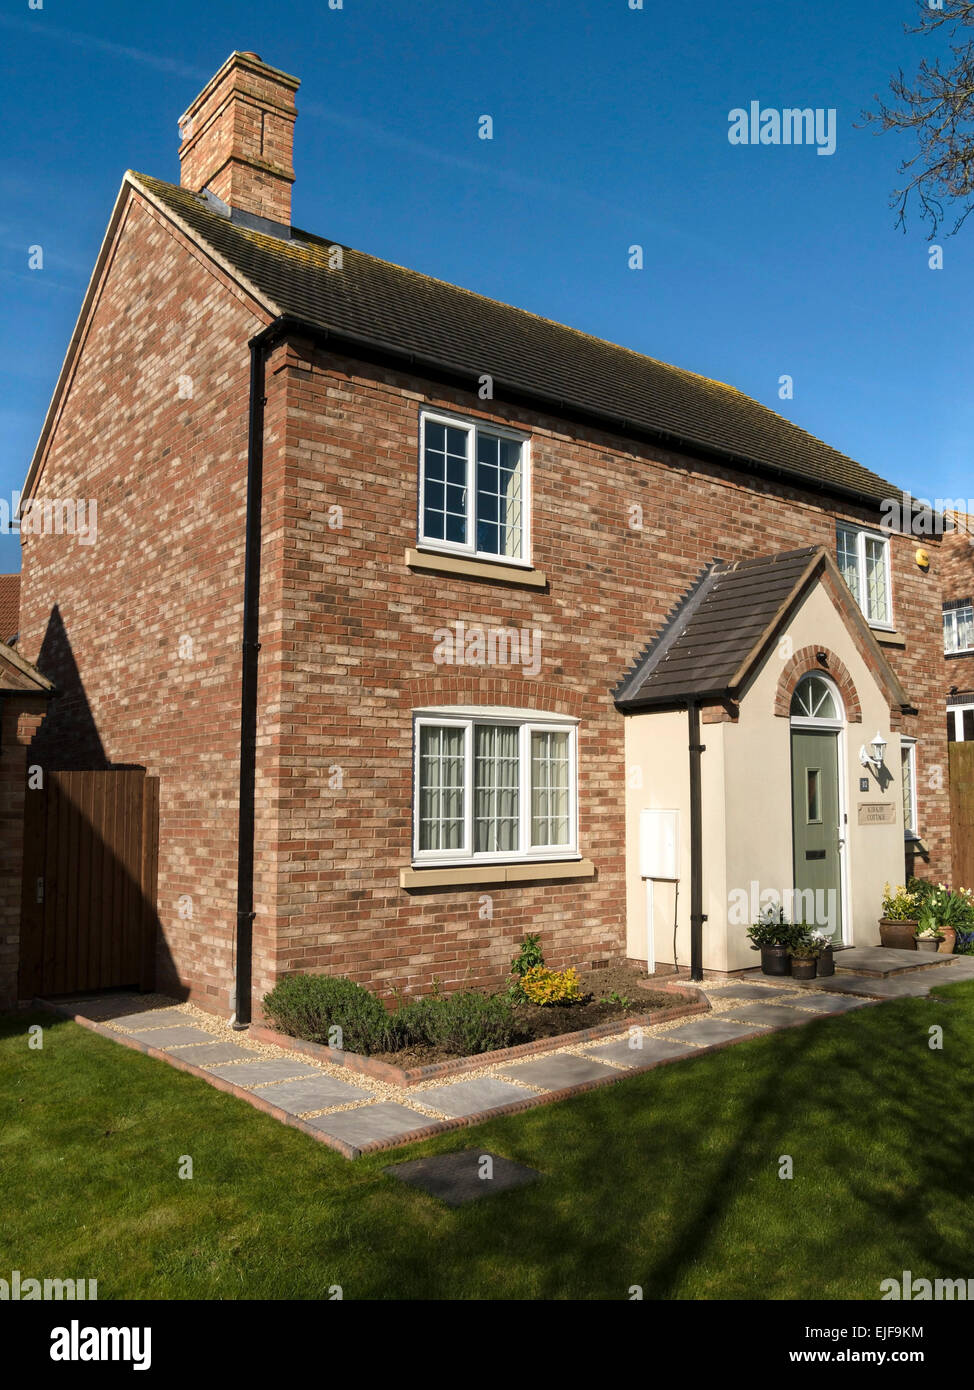 Miraculous Newbuild Home In Traditional English Cottage Style Built By Bovis Largest Home Design Picture Inspirations Pitcheantrous